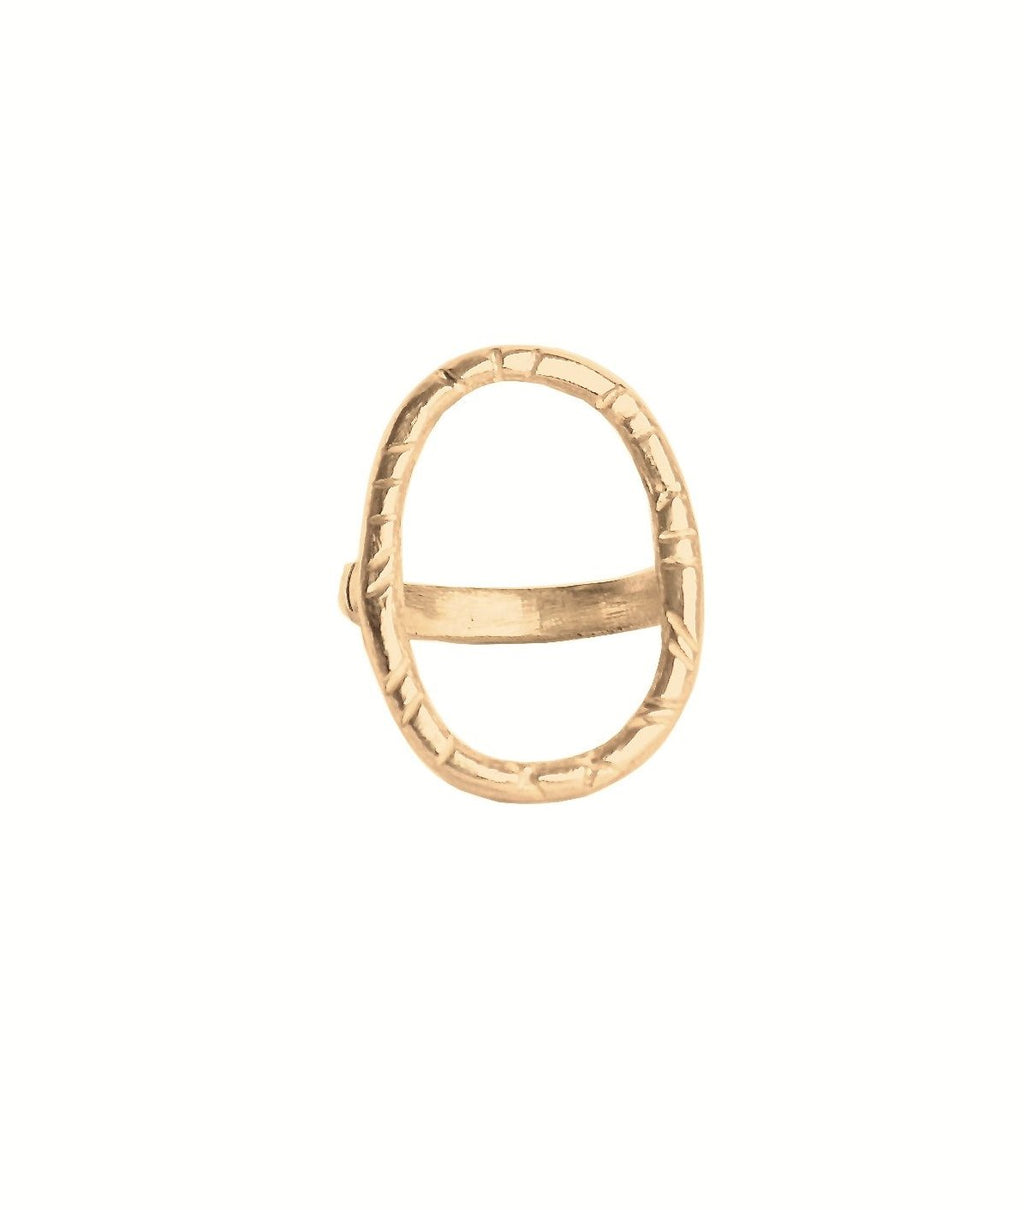 The Carrie Ring by Natalie McMillan, is a beautiful 14k solid gold staple for when you're in need of a statement ring, or just want to take your every day ring game up a notch.